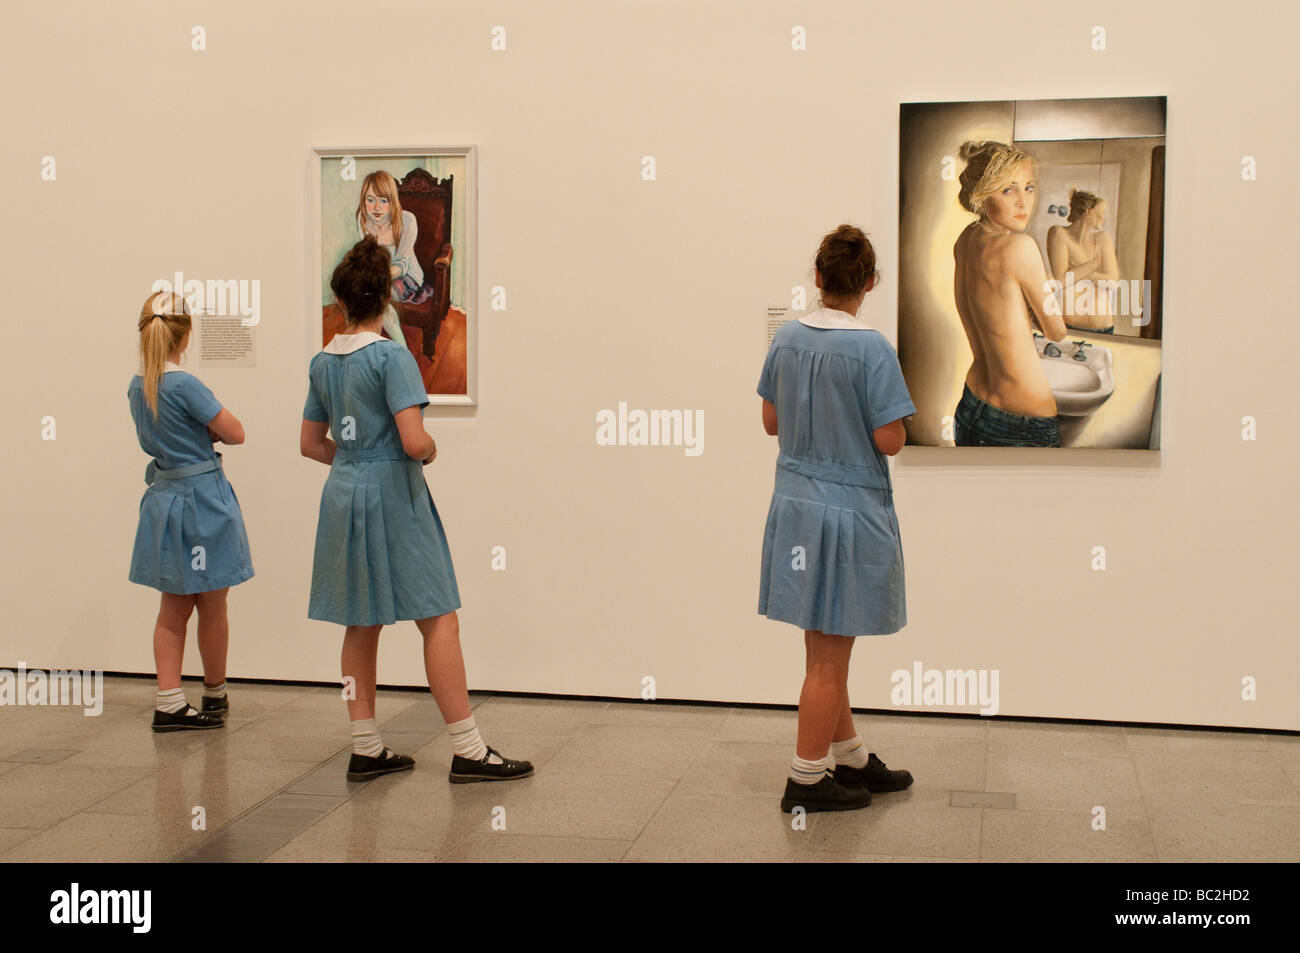 National Gallery of Victoria, Schoolgirls looking at paintings of young women, Melbourne, Victoria, Australia - Stock Image